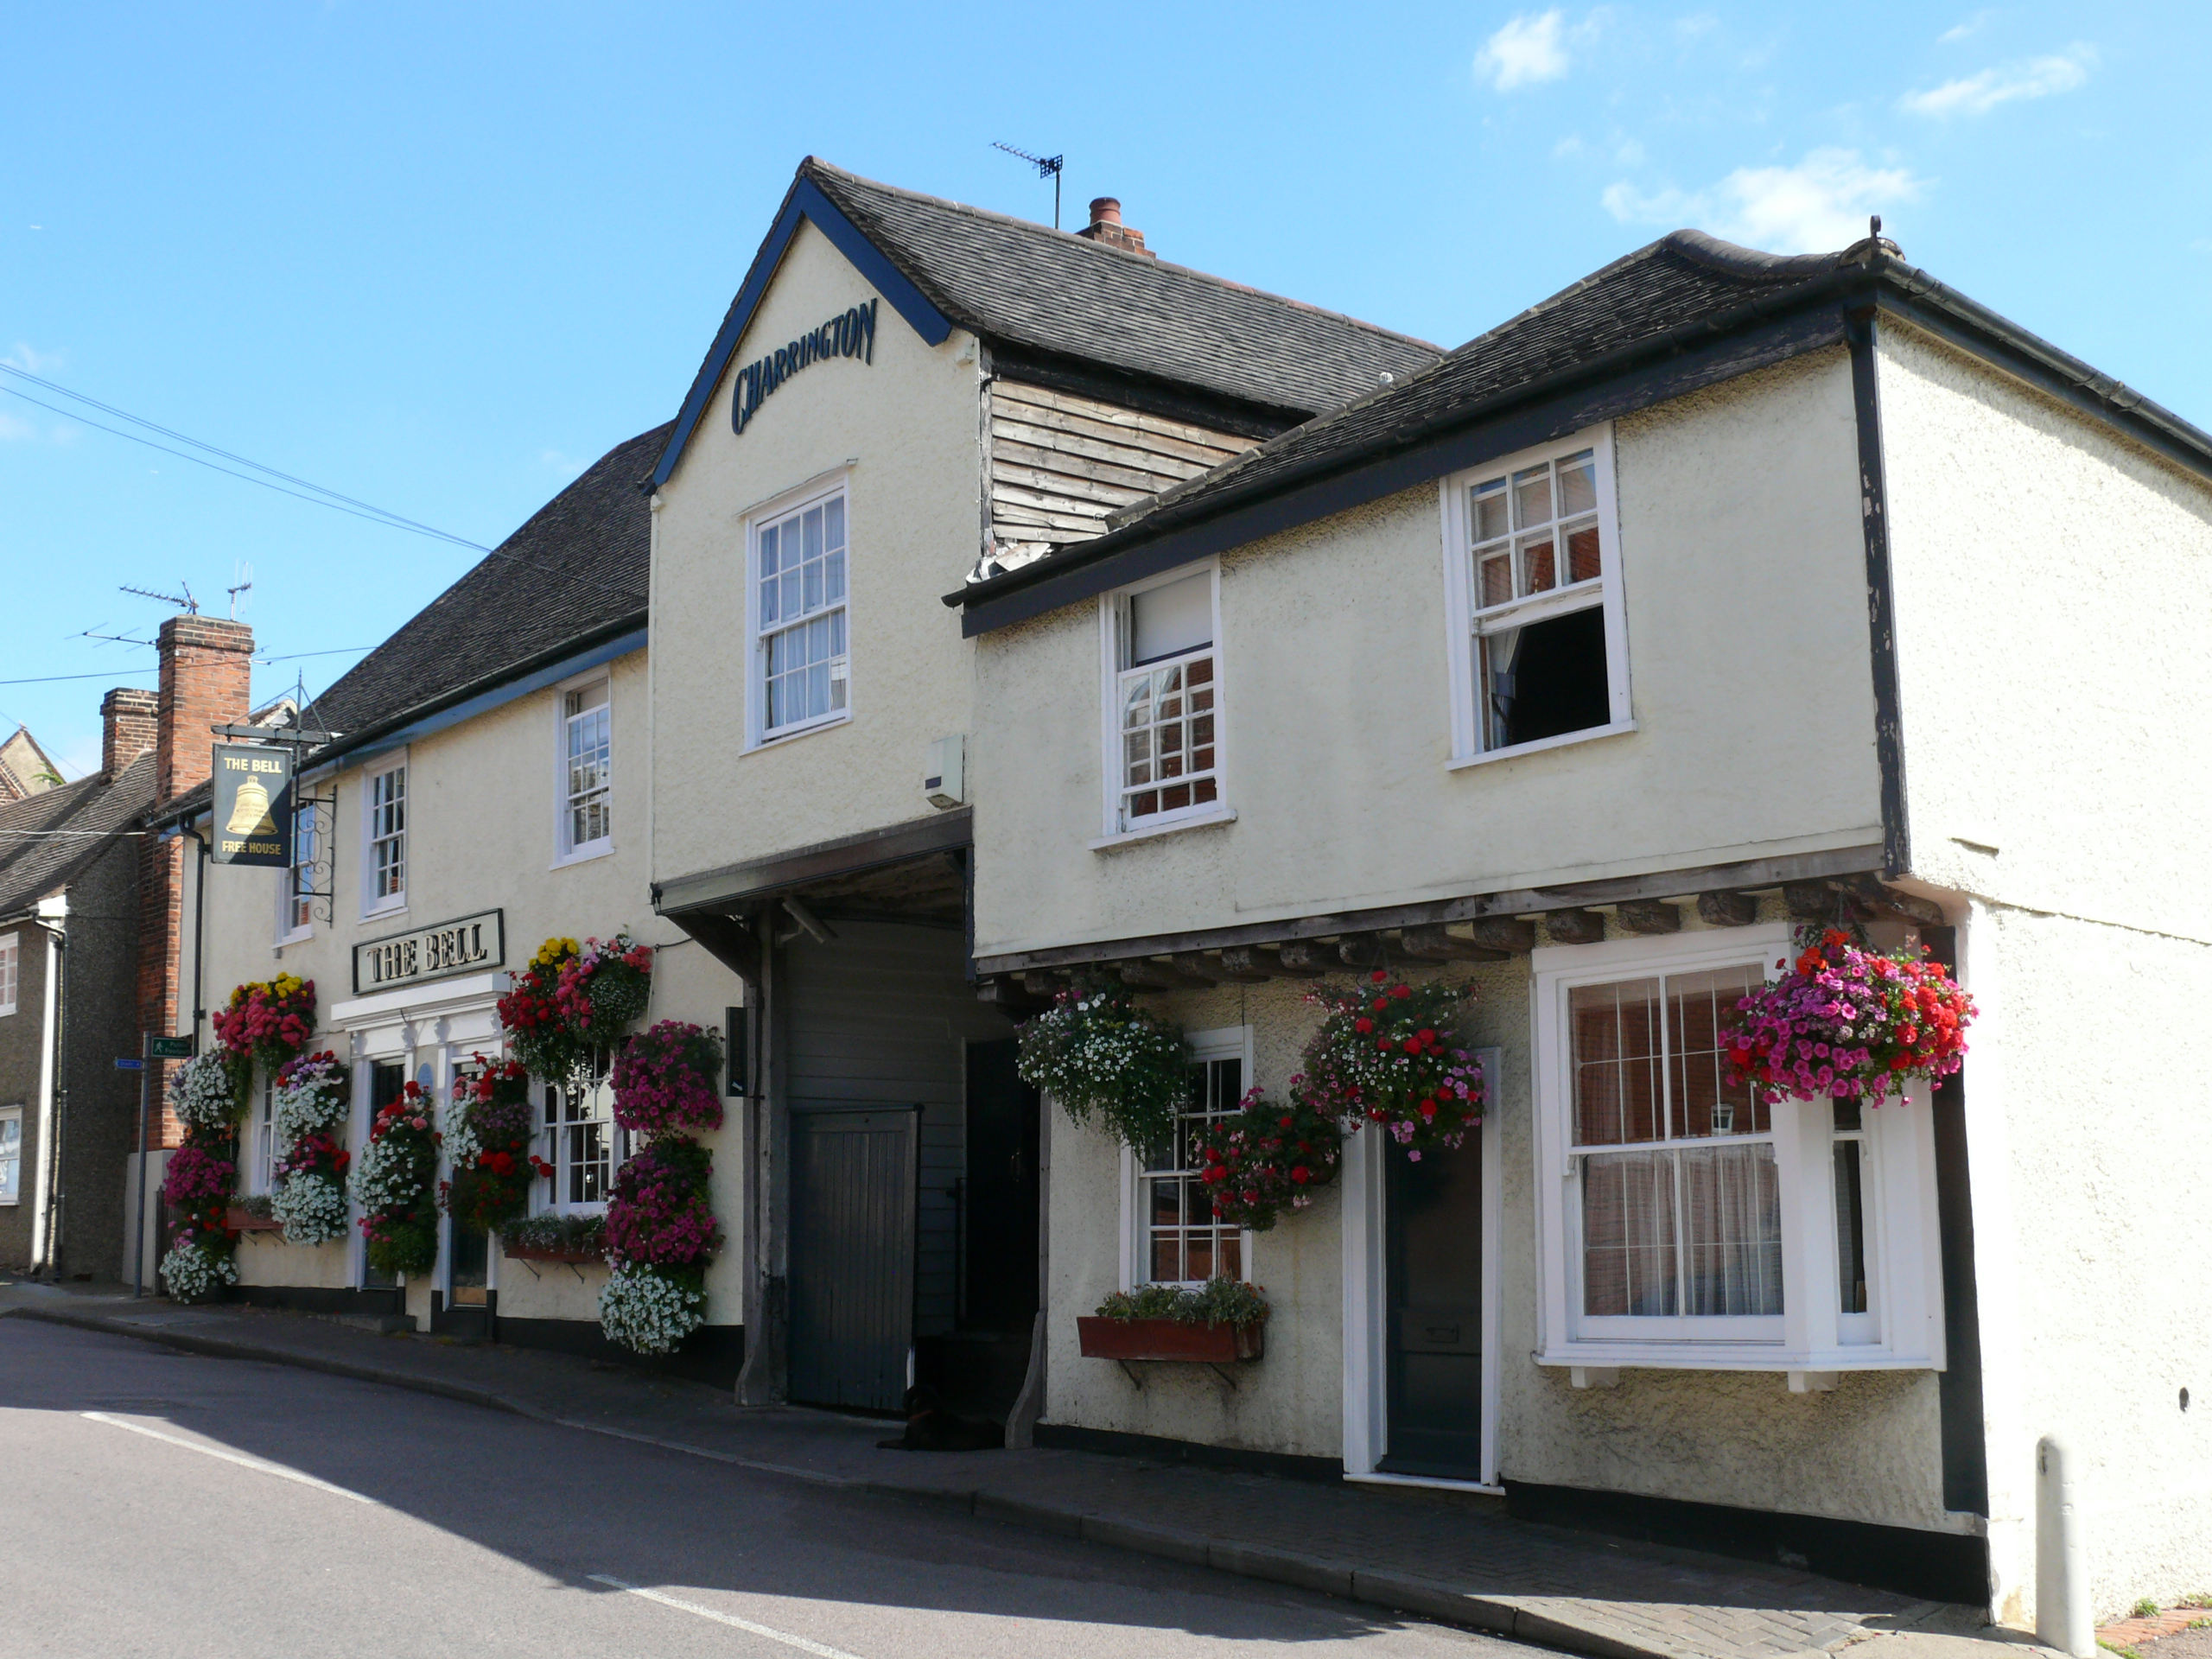 The 15th century Bell Inn was built during Horndon's prosperous wool trading era, to accommodate the many travelling pilgrims, wool merchants and tradesmen.